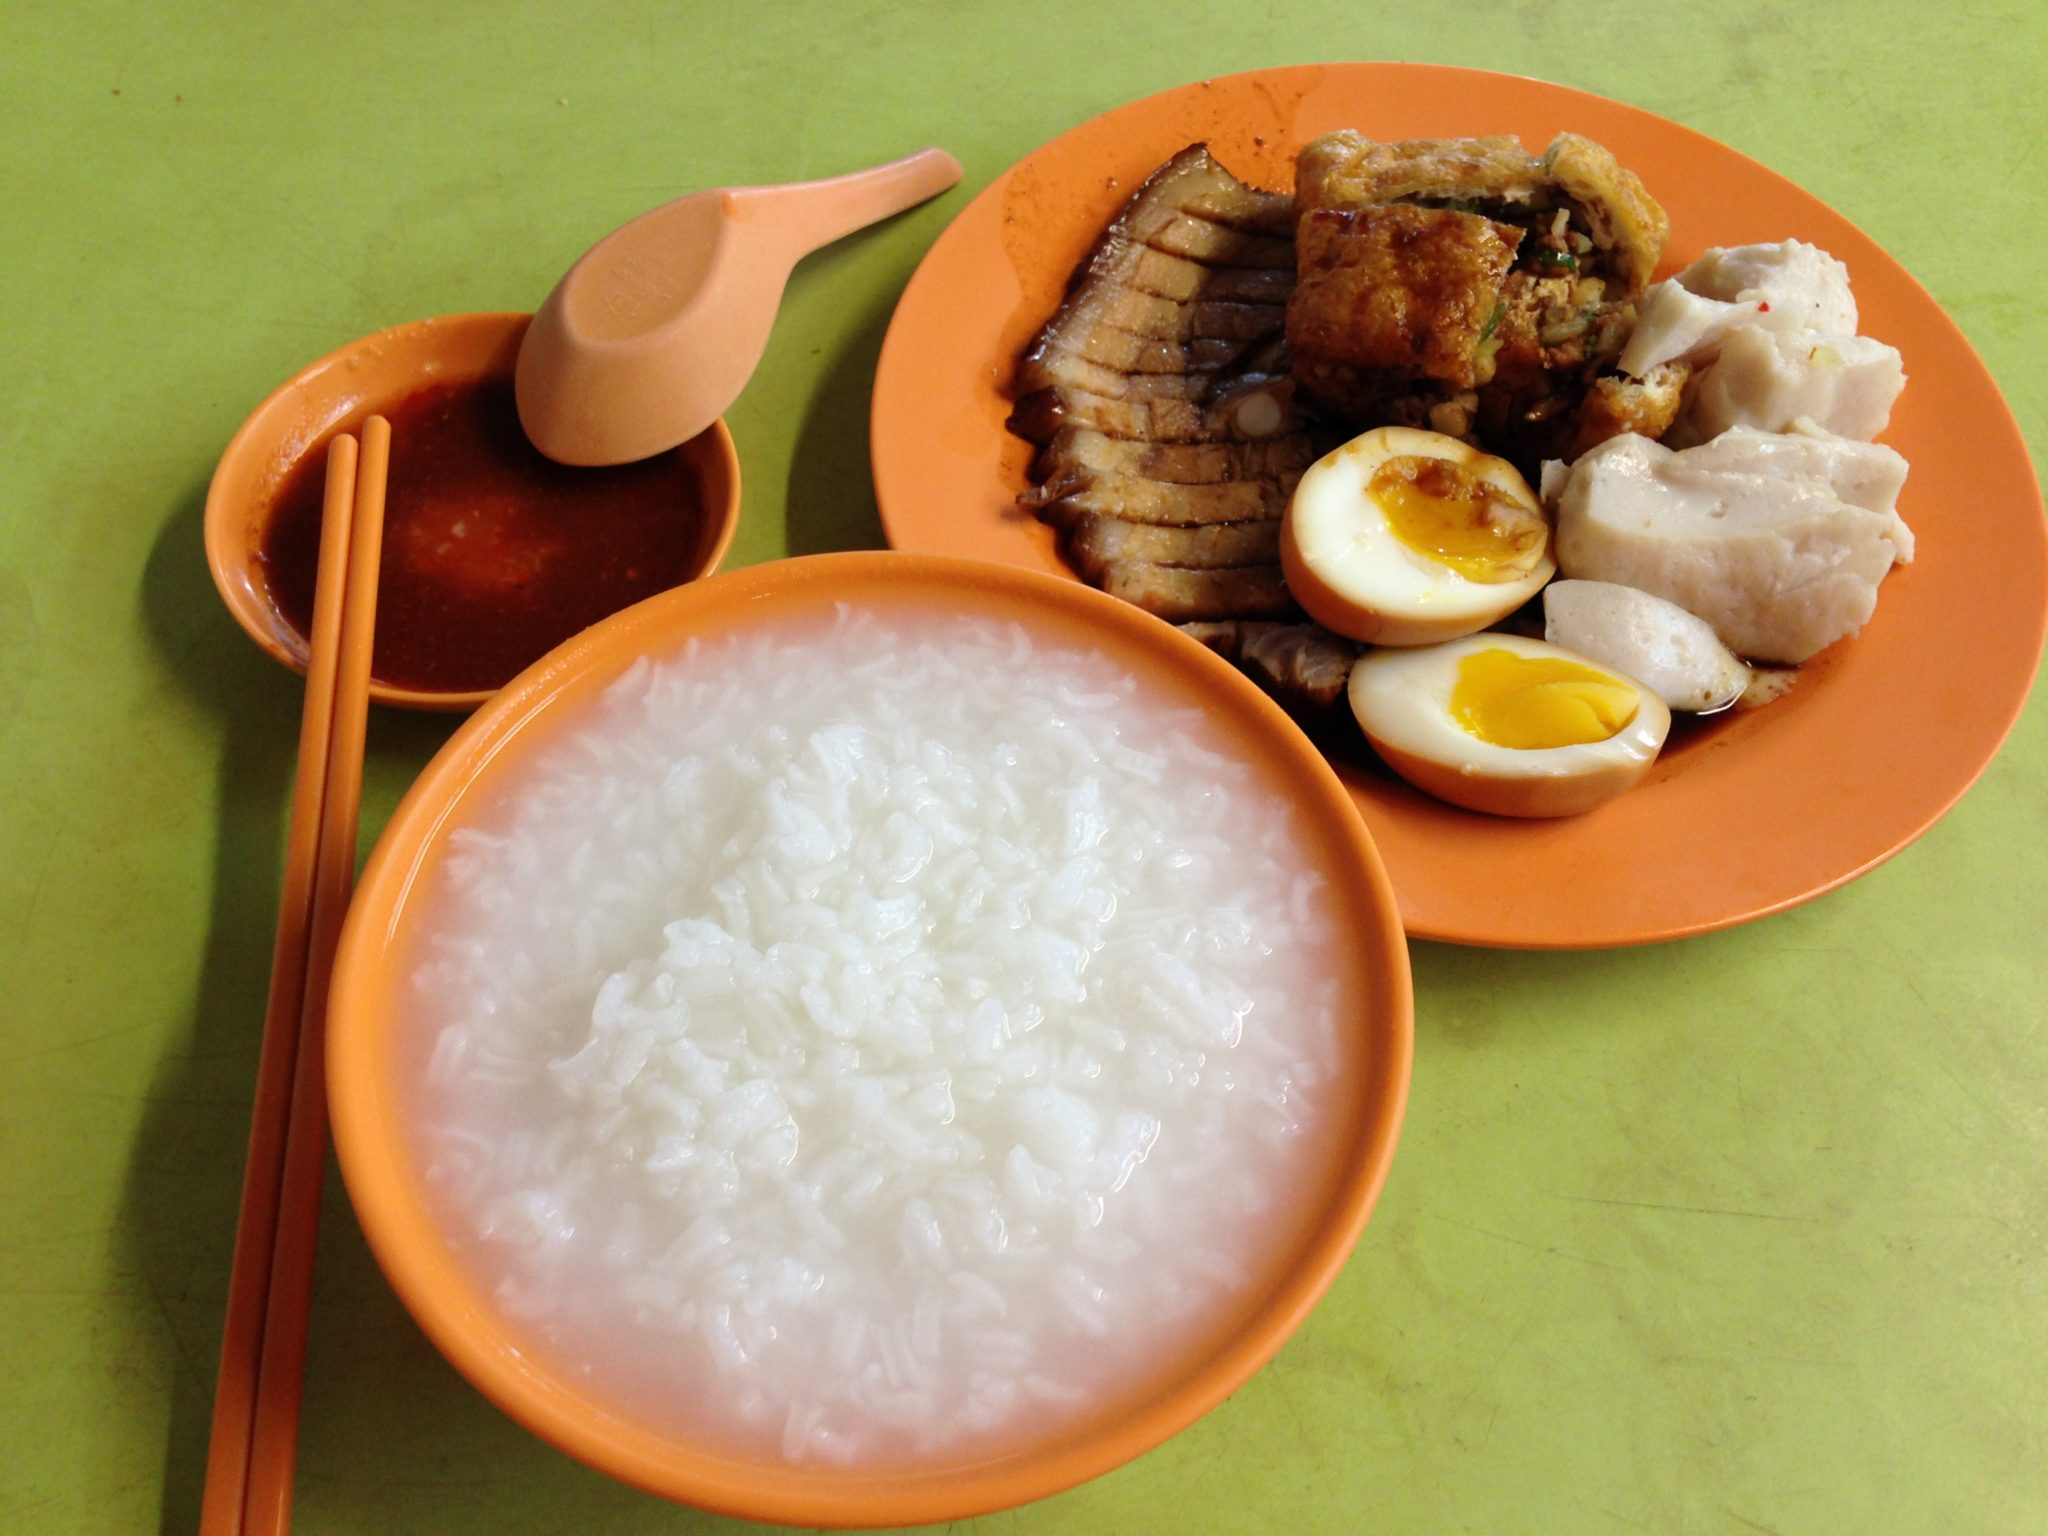 teochew porridge teochew muay rice chili braised side dish salted egg roast meat singapore malaysia traditional streeet hawker food